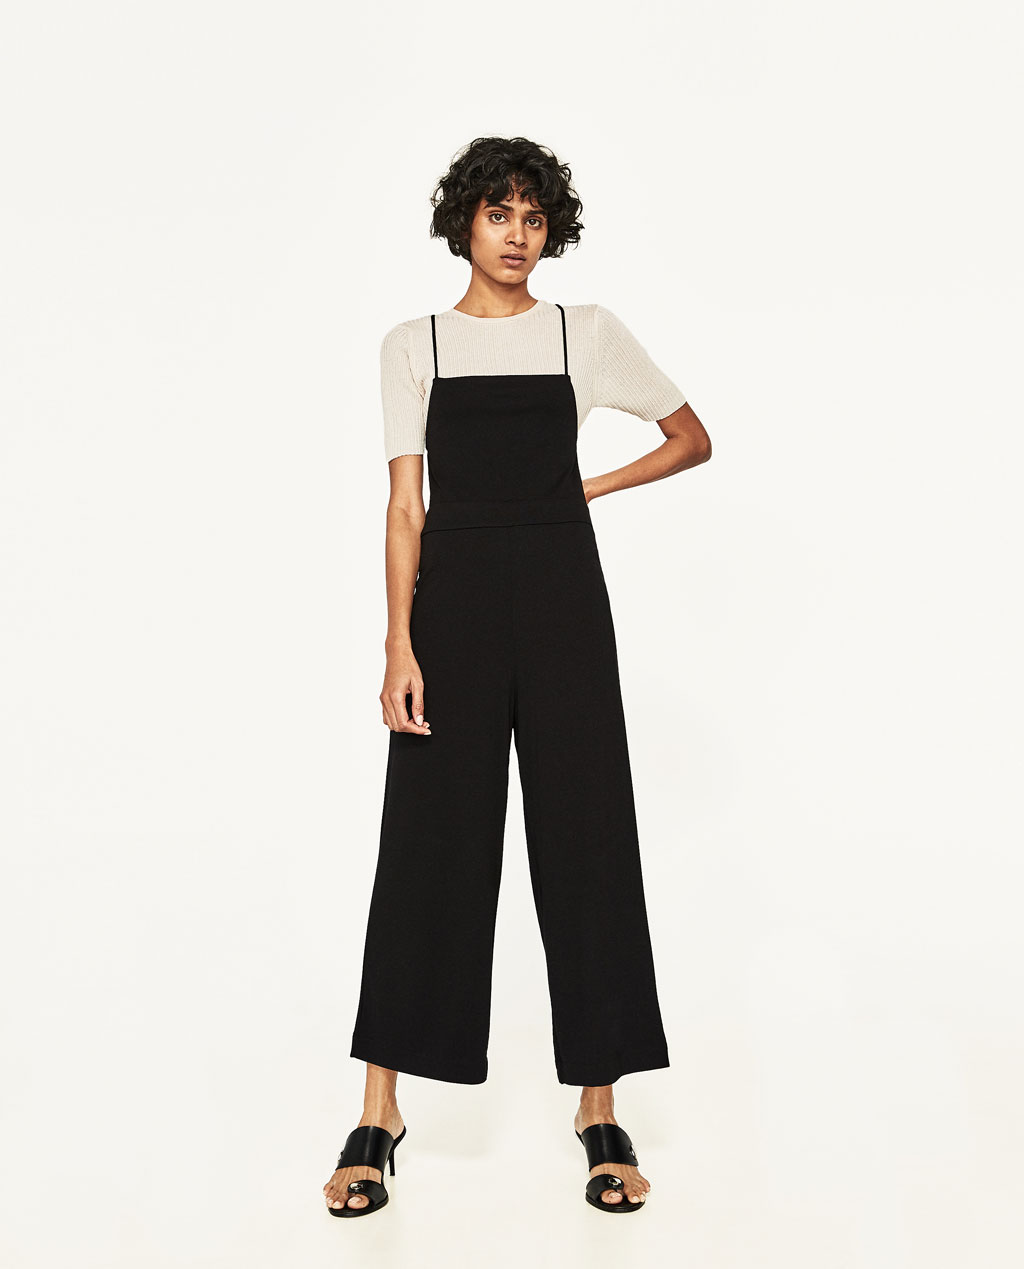 image 1 of backless jumpsuit from zara sorknhv